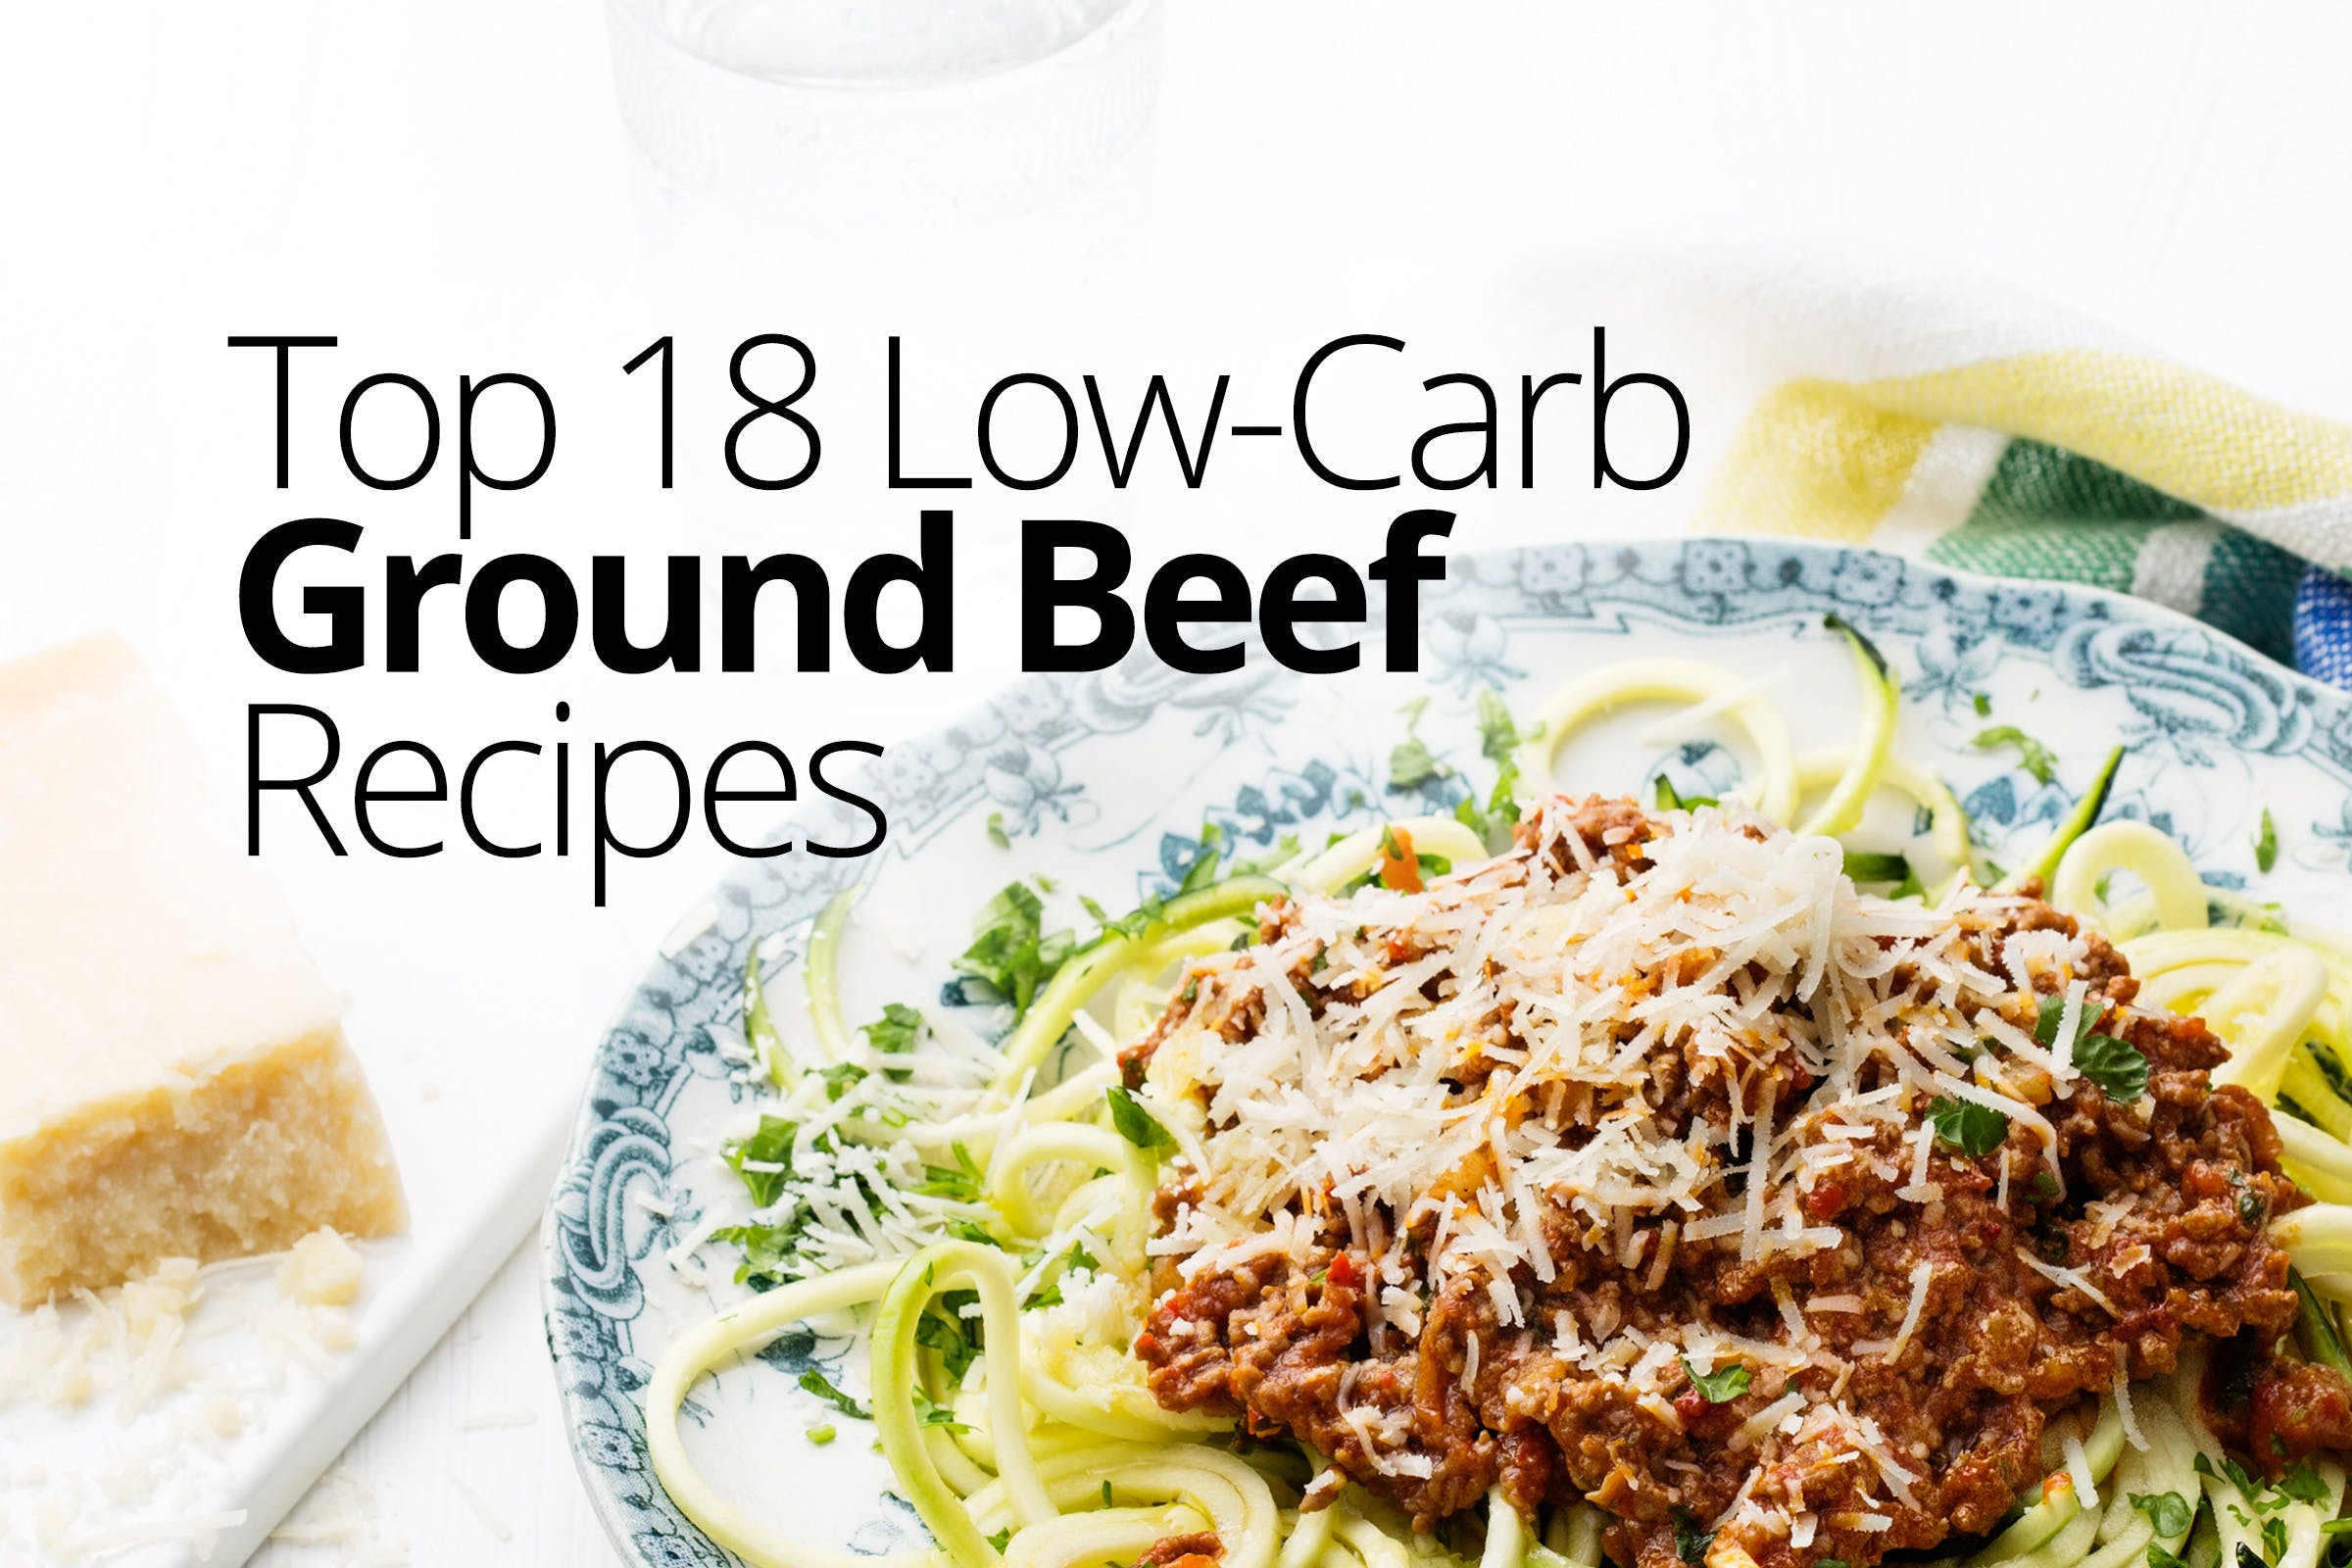 Hamburger Meat Recipes Low Carb Keto  Low Carb and Keto Ground beef Recipes – Quick and Easy